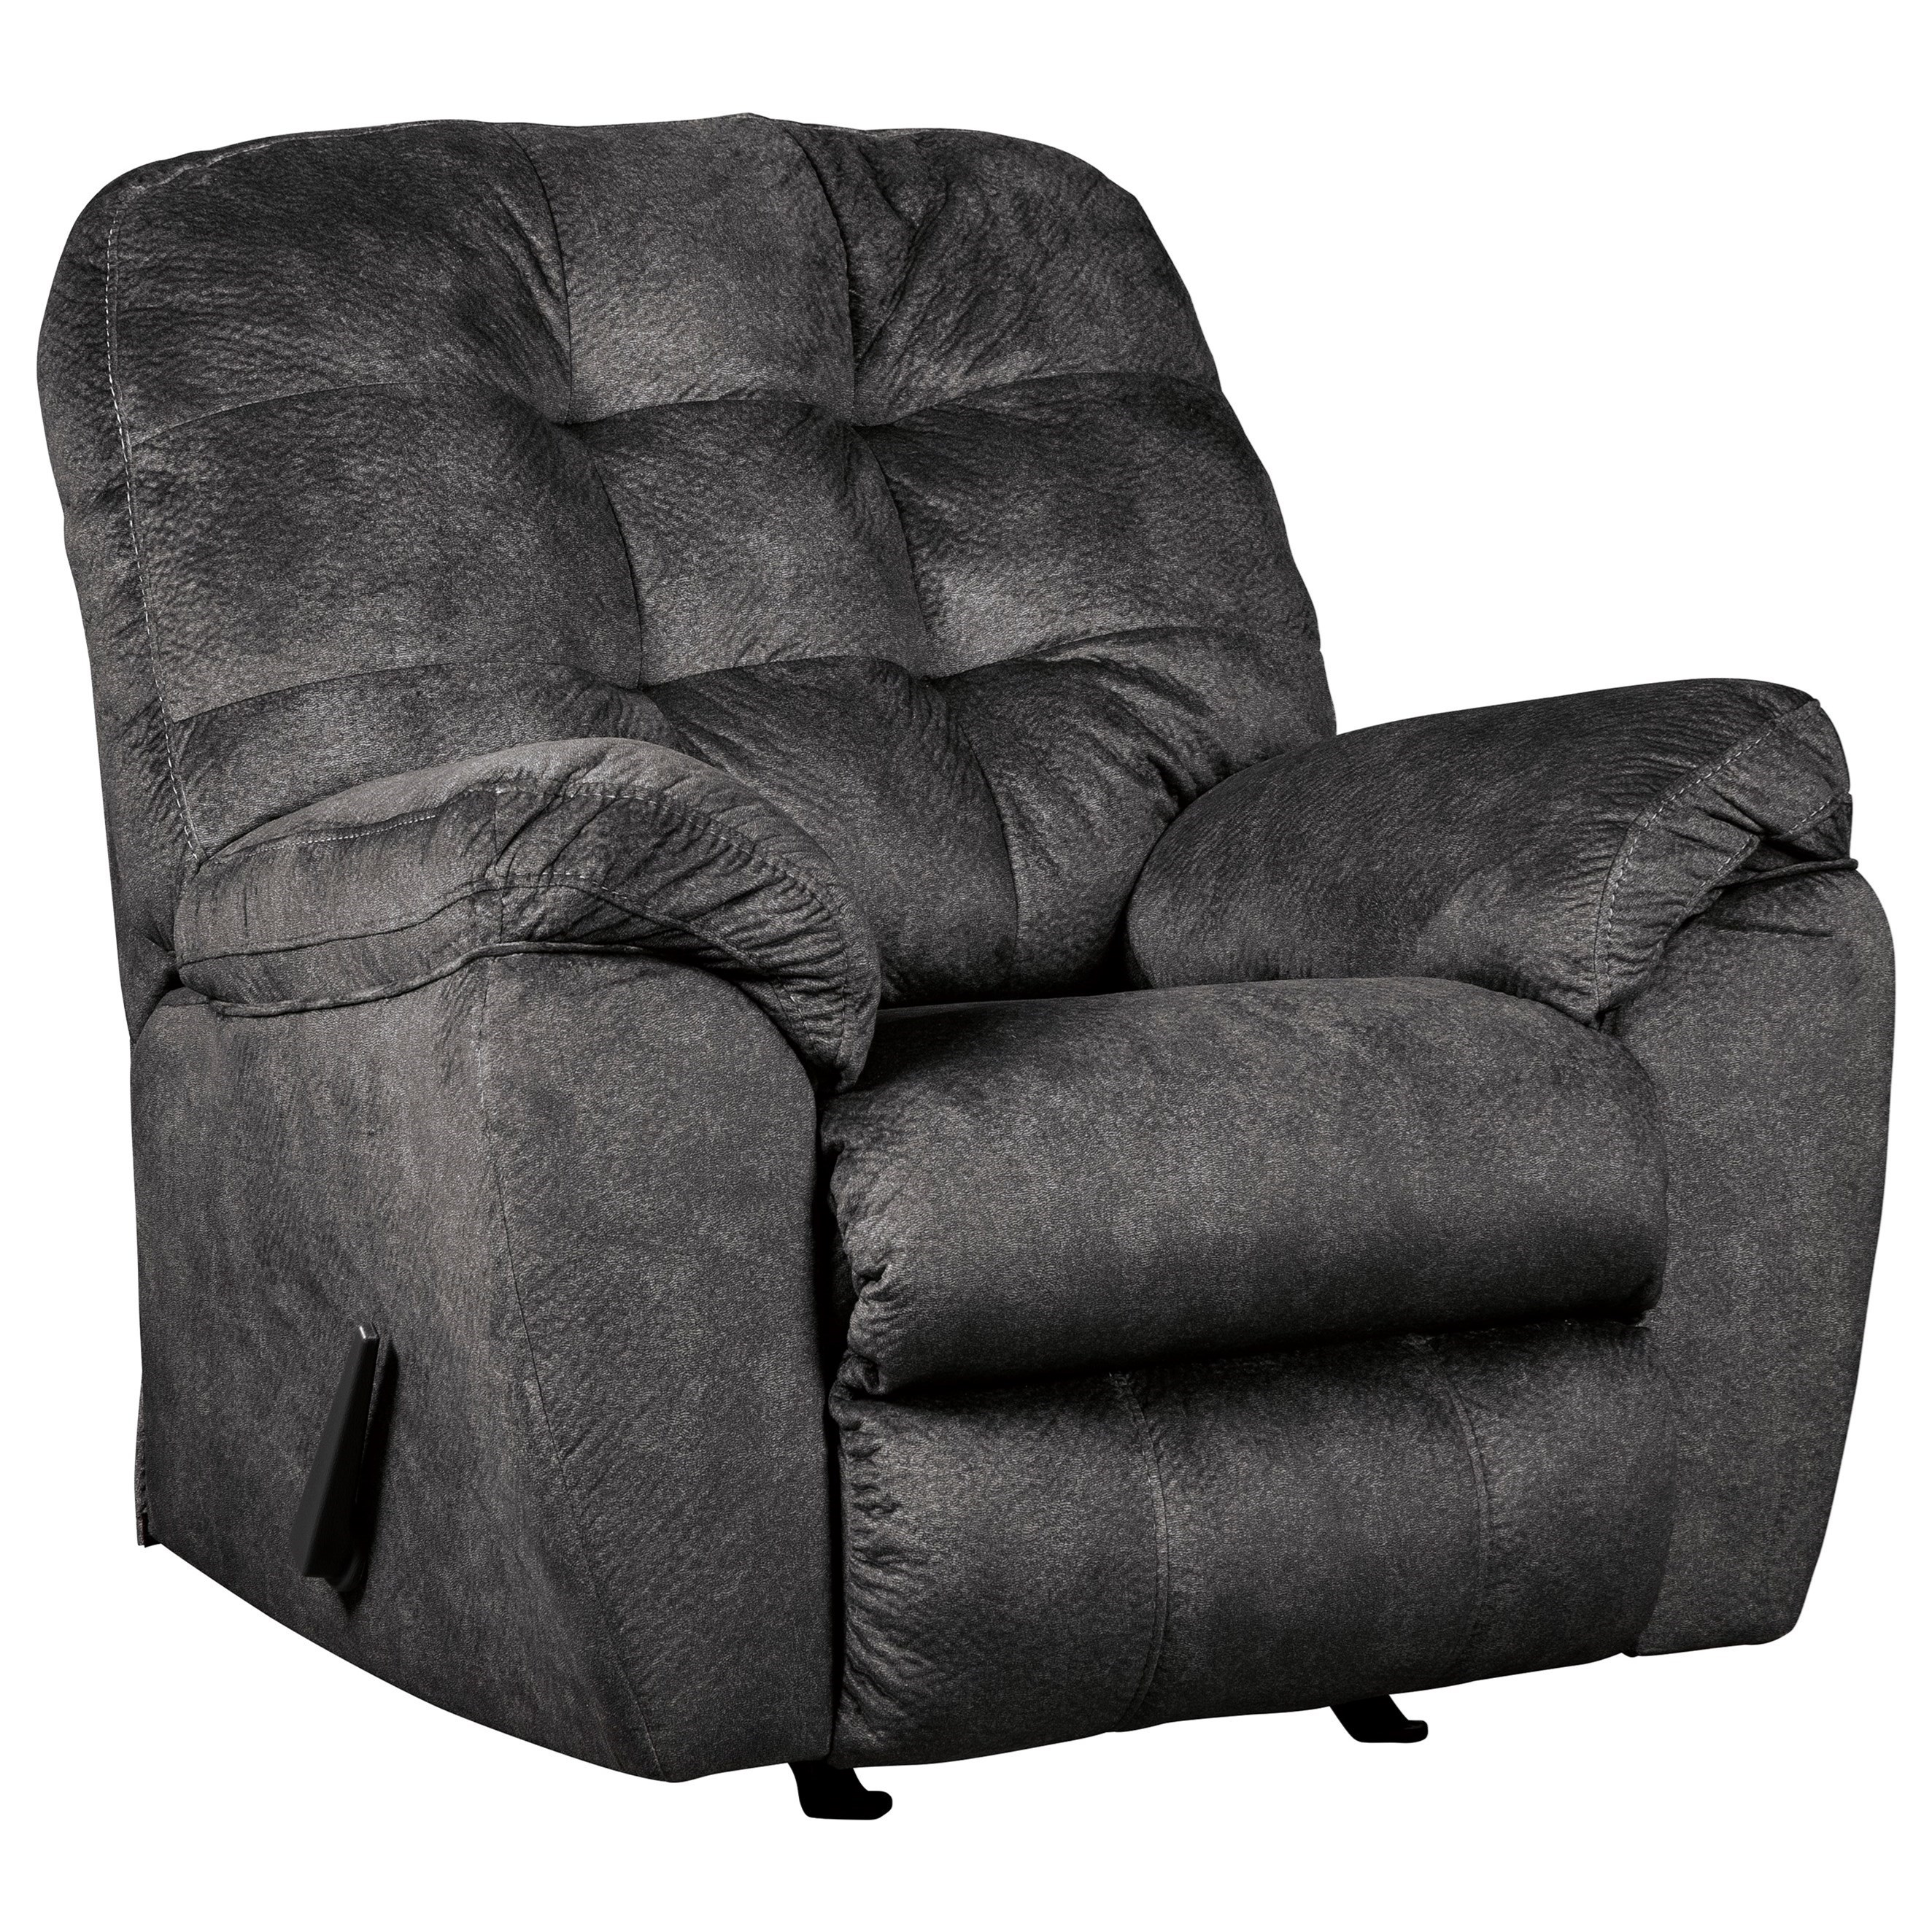 Accrington Rocker Recliner by Signature Design by Ashley at Household Furniture